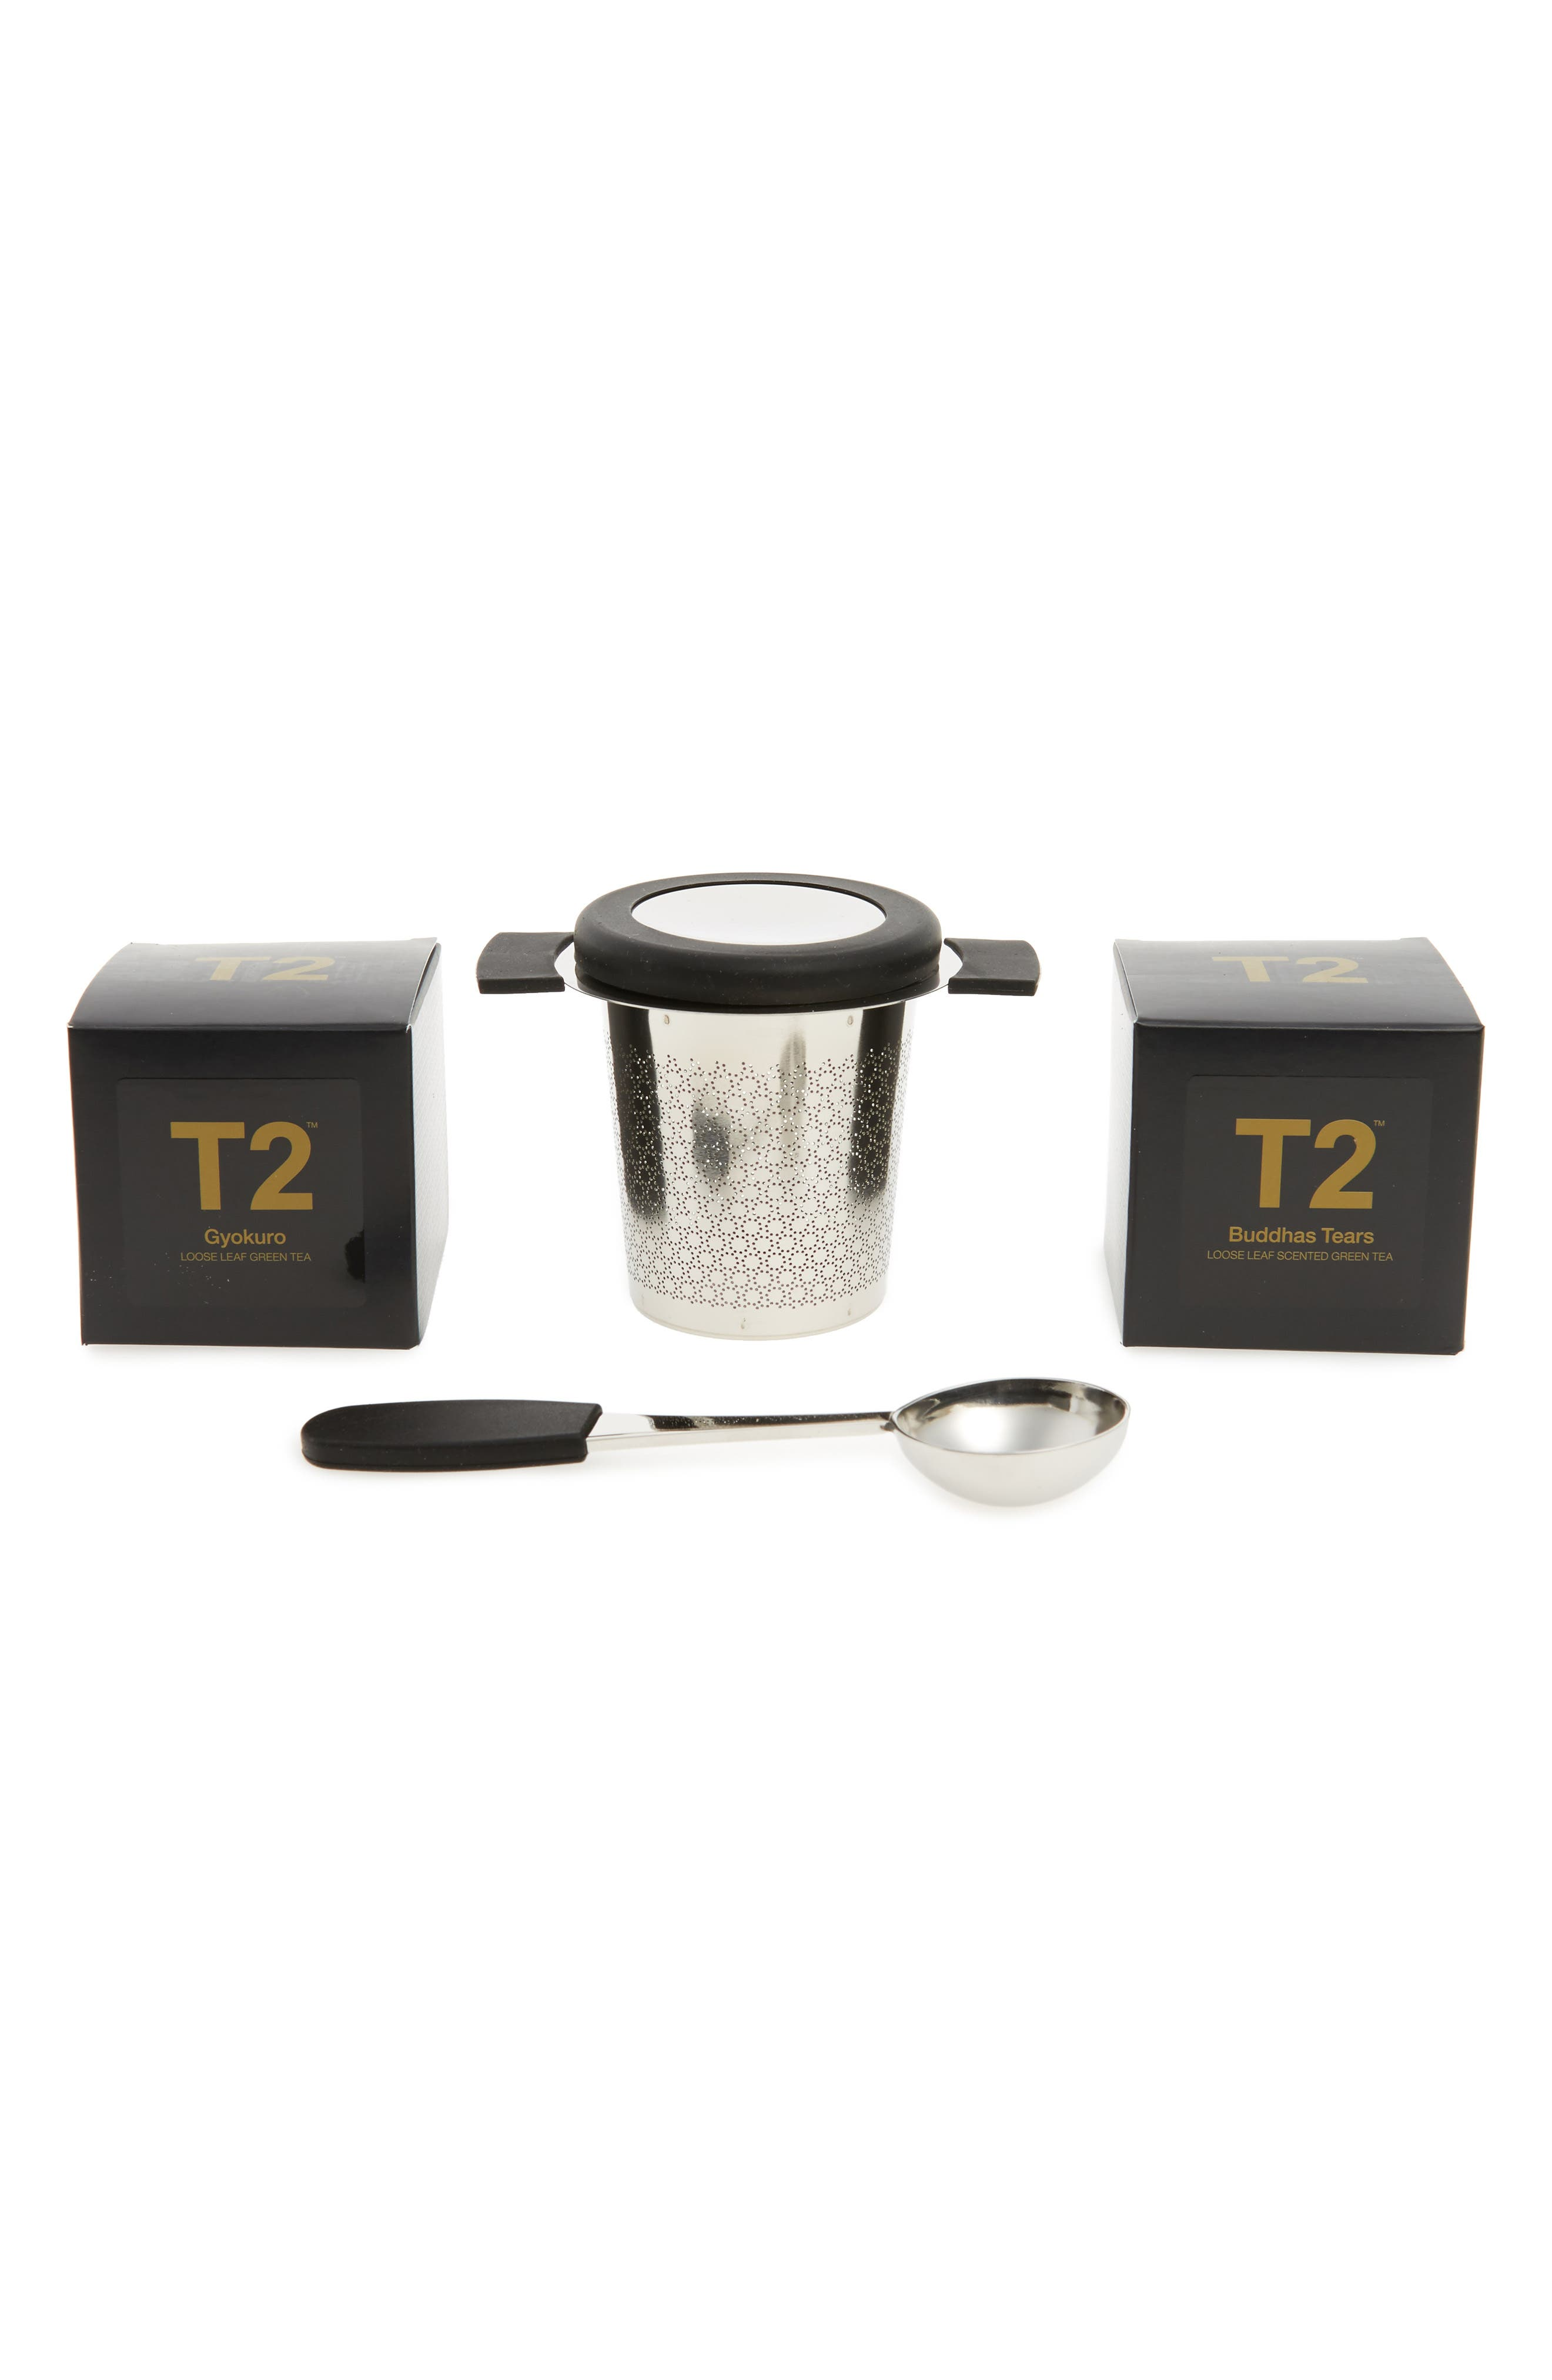 T2 Tea Little Bit Luxe Loose Leaf Tea Box Set